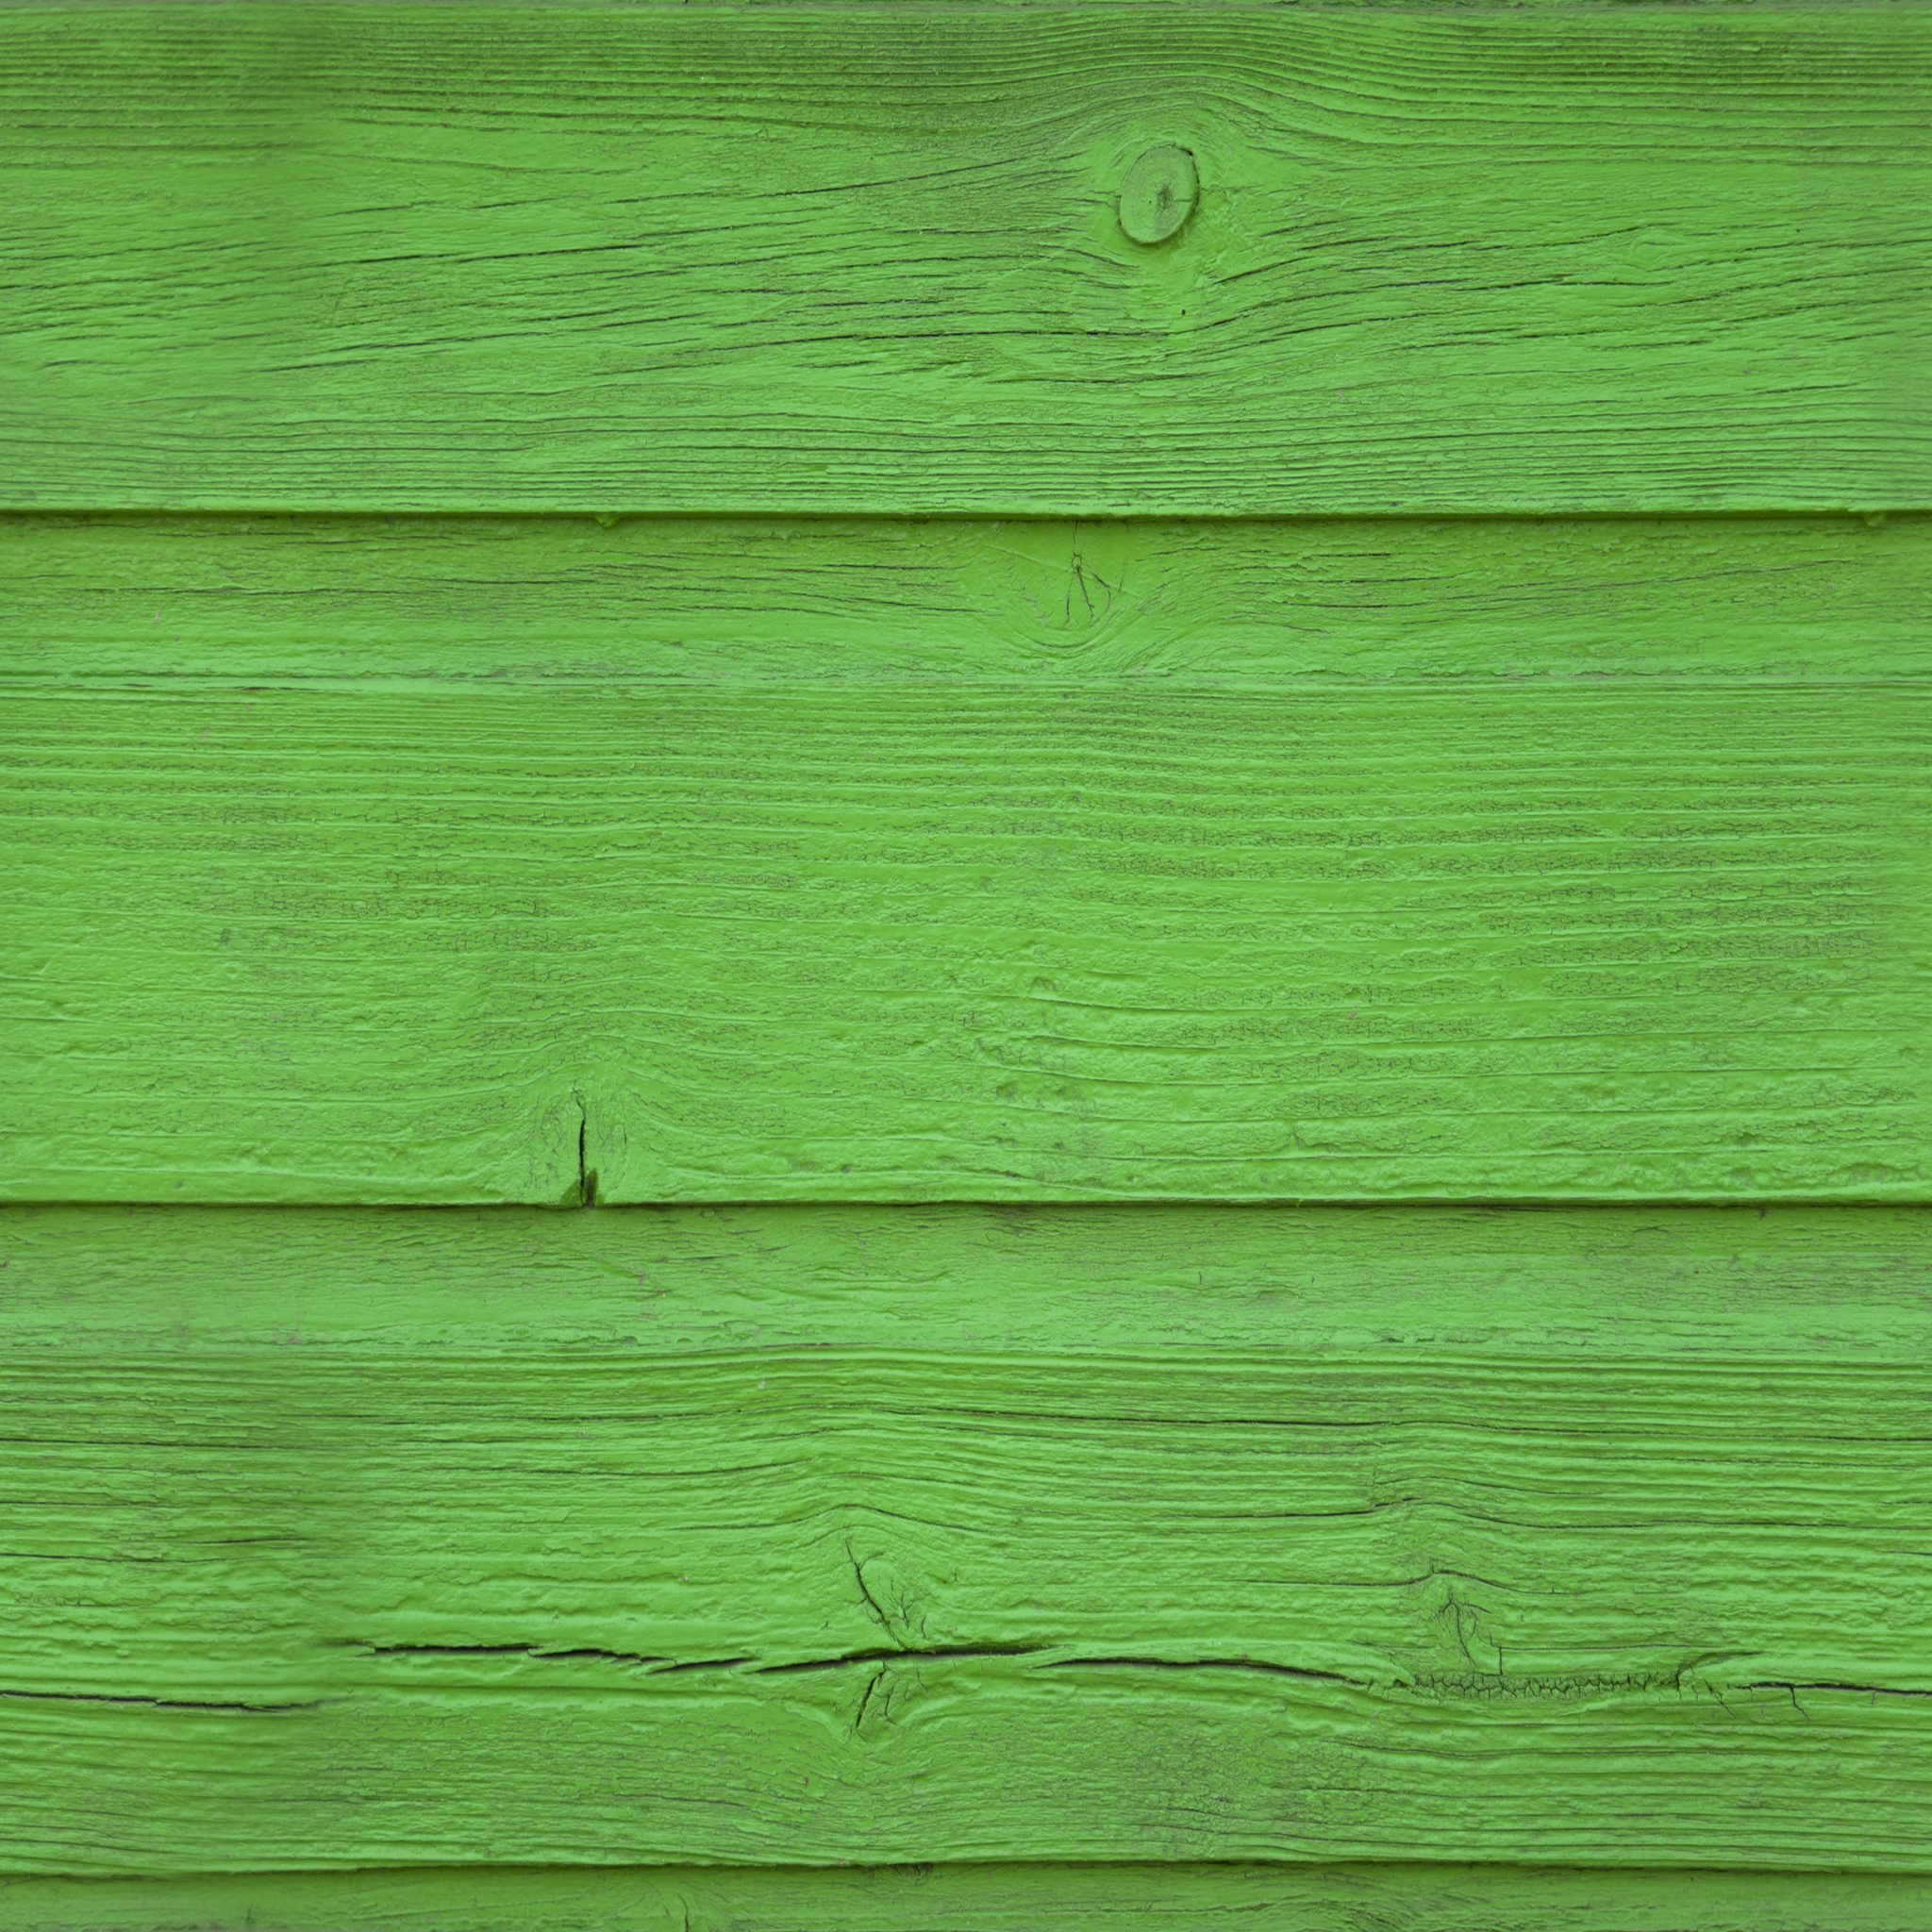 Brilliant Green Wood Siding.jpg